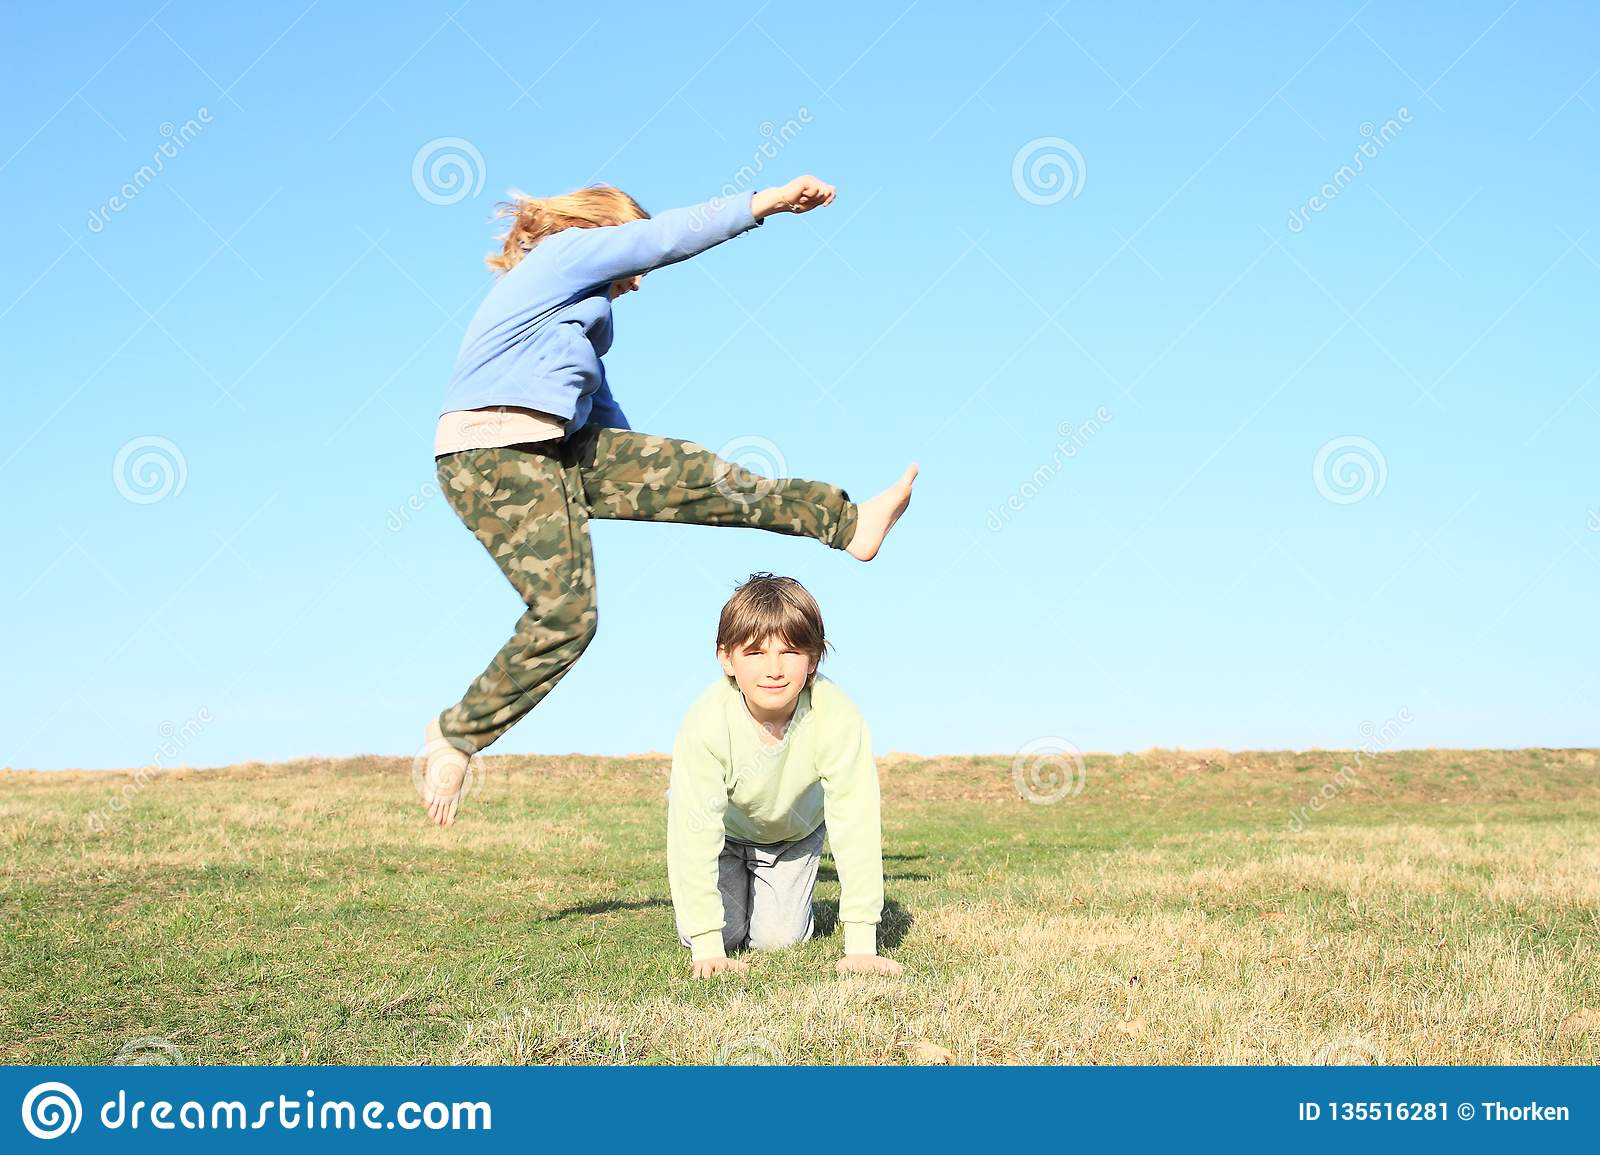 Barefoot Girl Jumping Over Boy Stock Image - Image Of -4848